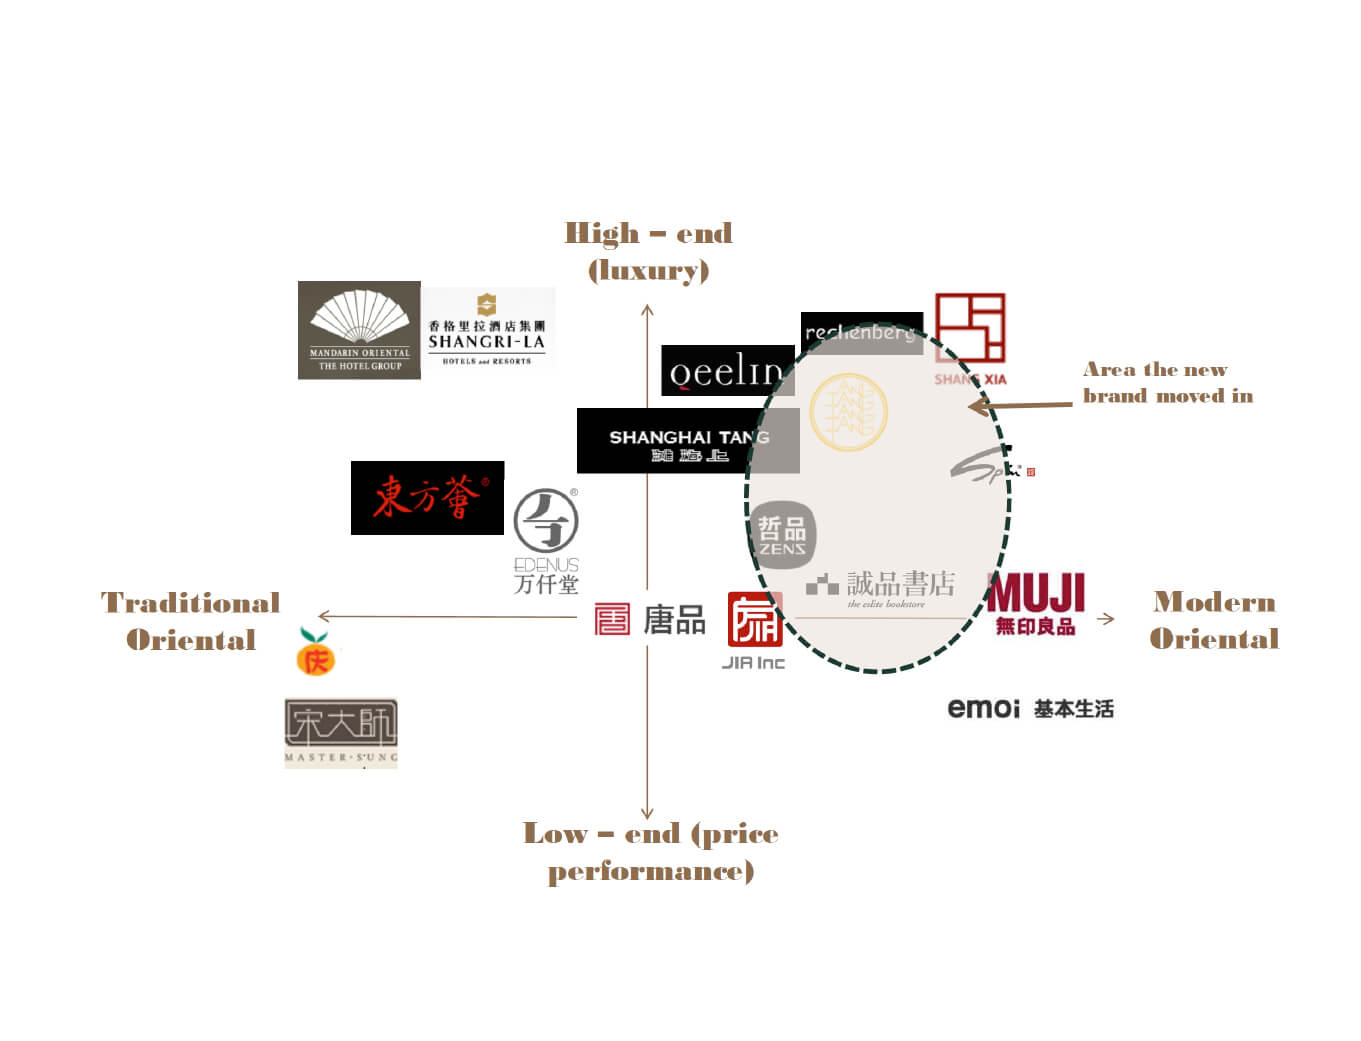 fengshui brand positioning chart